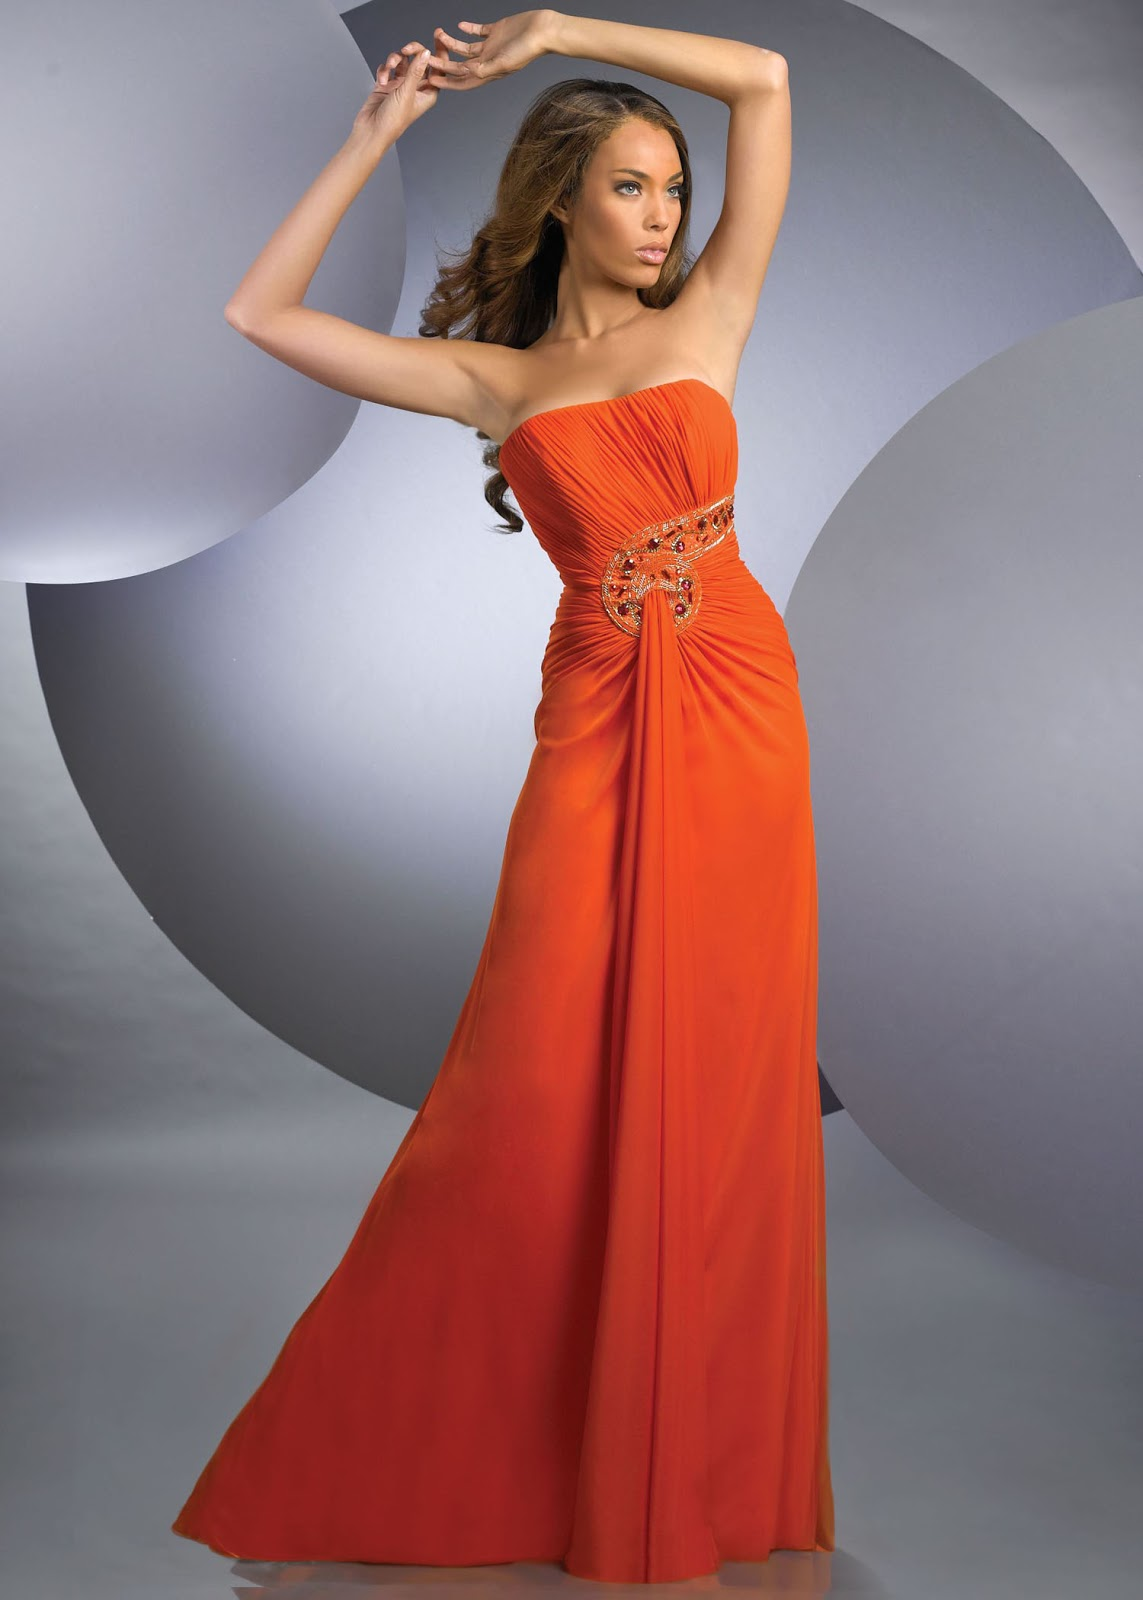 Fantastic Women Best Evening Dress Collection 2013